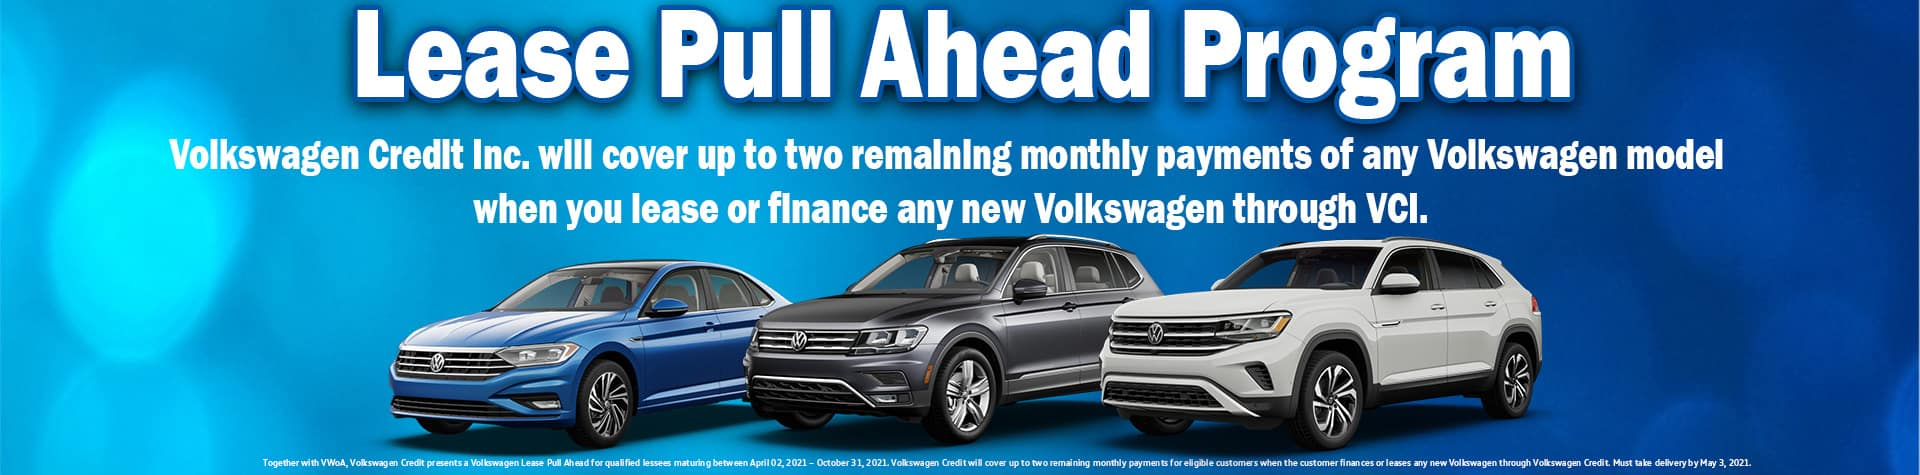 Lease pull ahead banner